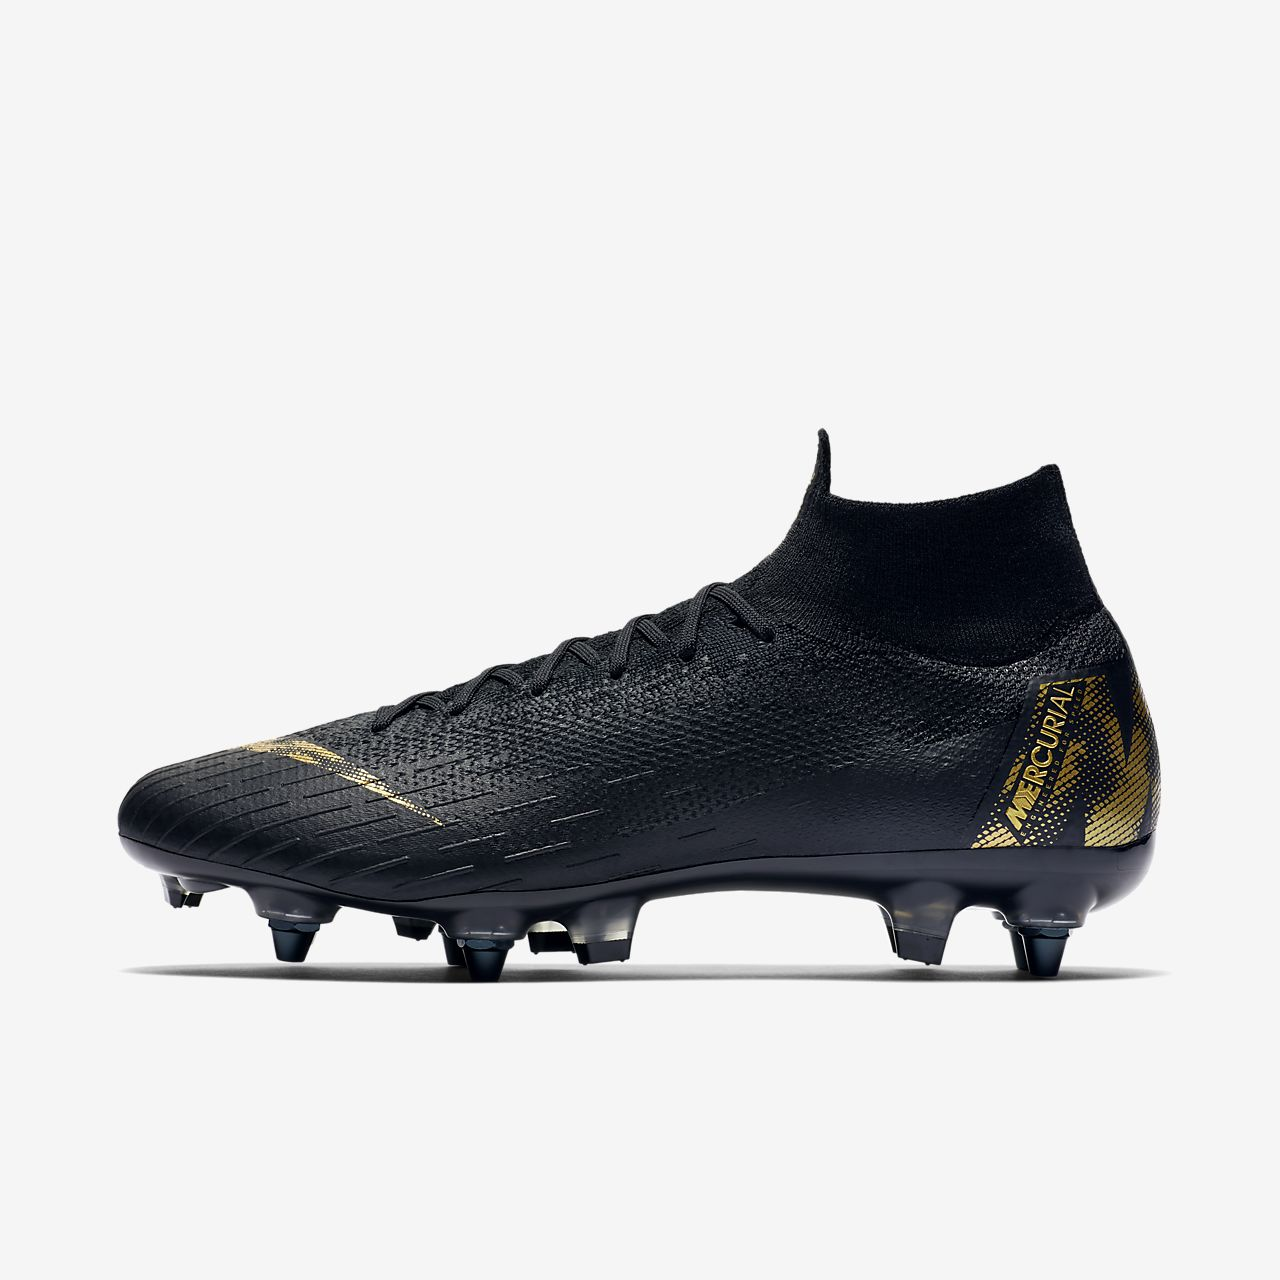 e43d32ca7f603 ... Nike Mercurial Superfly 360 Elite SG-PRO Anti-Clog Soft-Ground Football  Boot